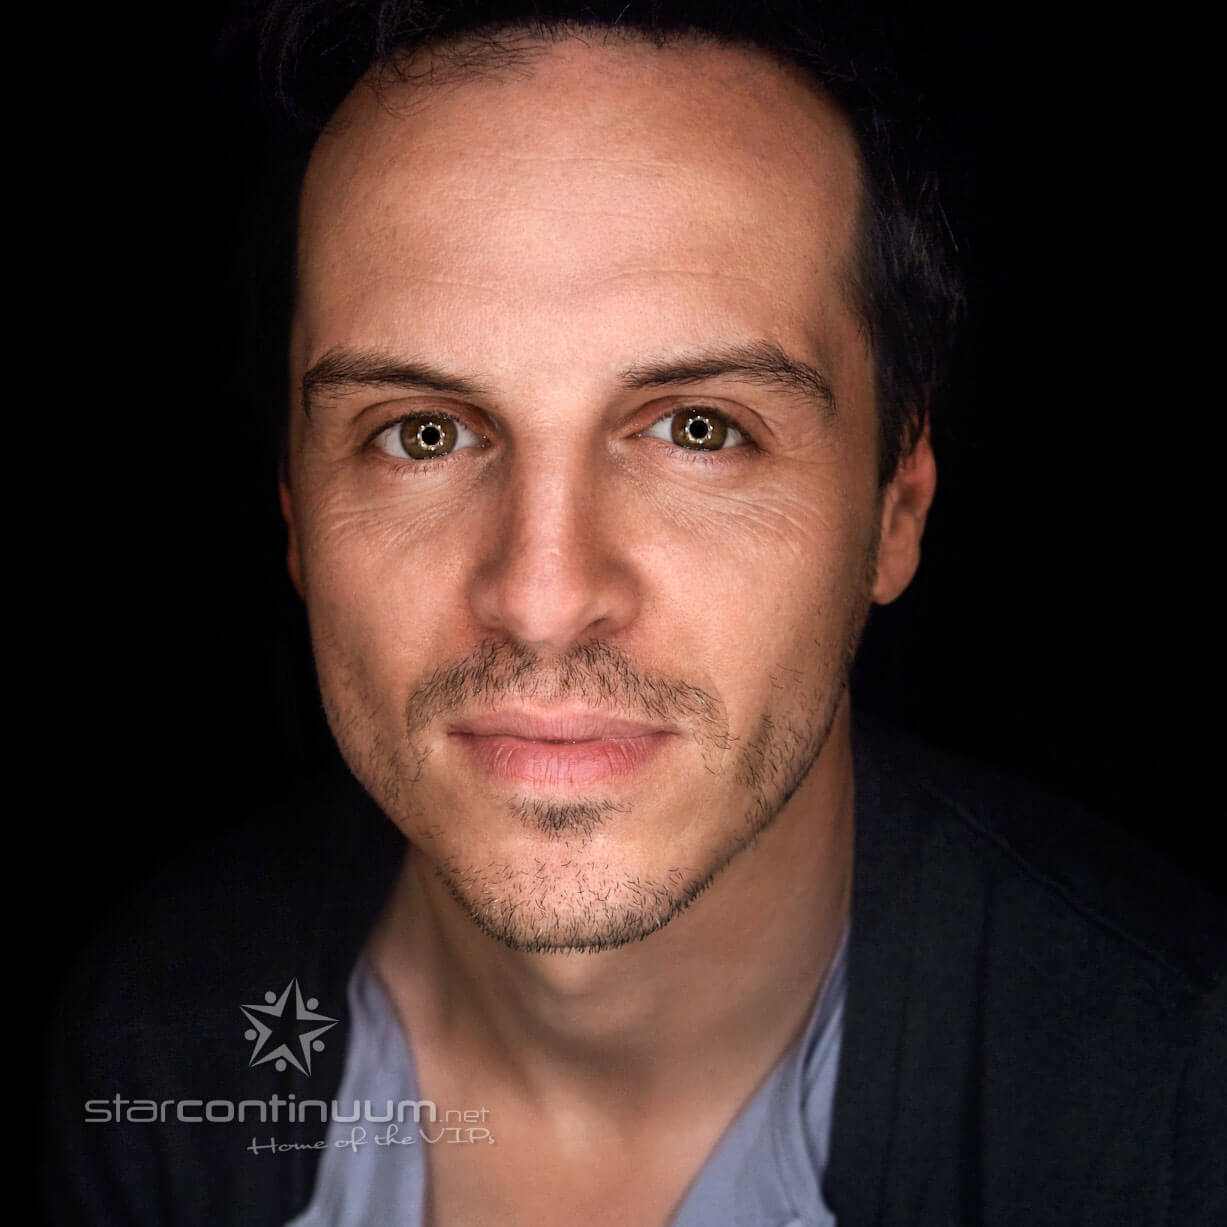 starcontinuum.net | Faces | Andrew Scott